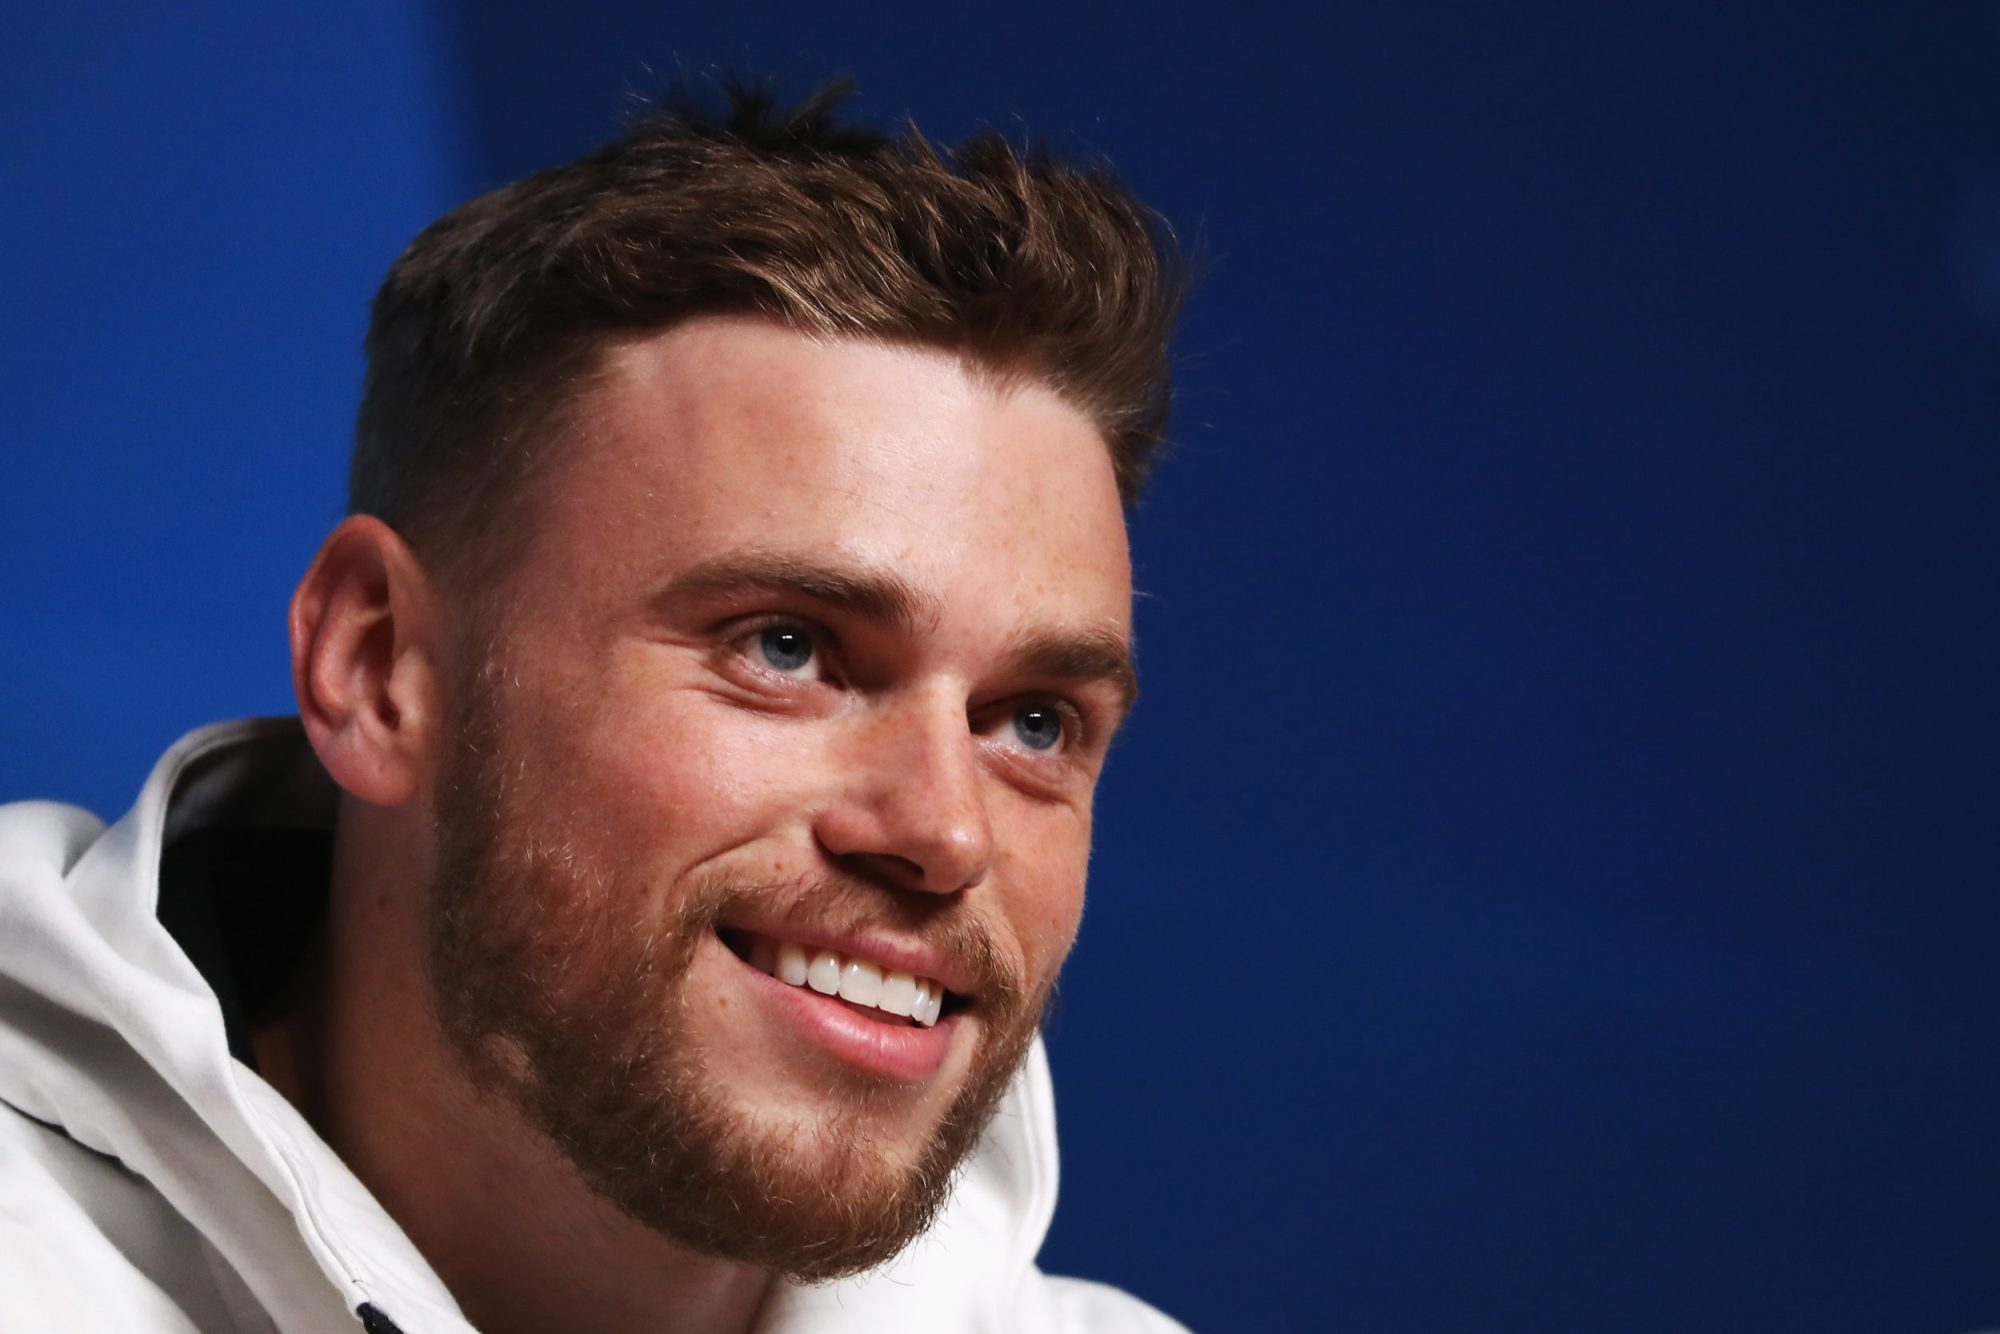 Photo of Gus Kenworthy at the 2018 Winter Olympics